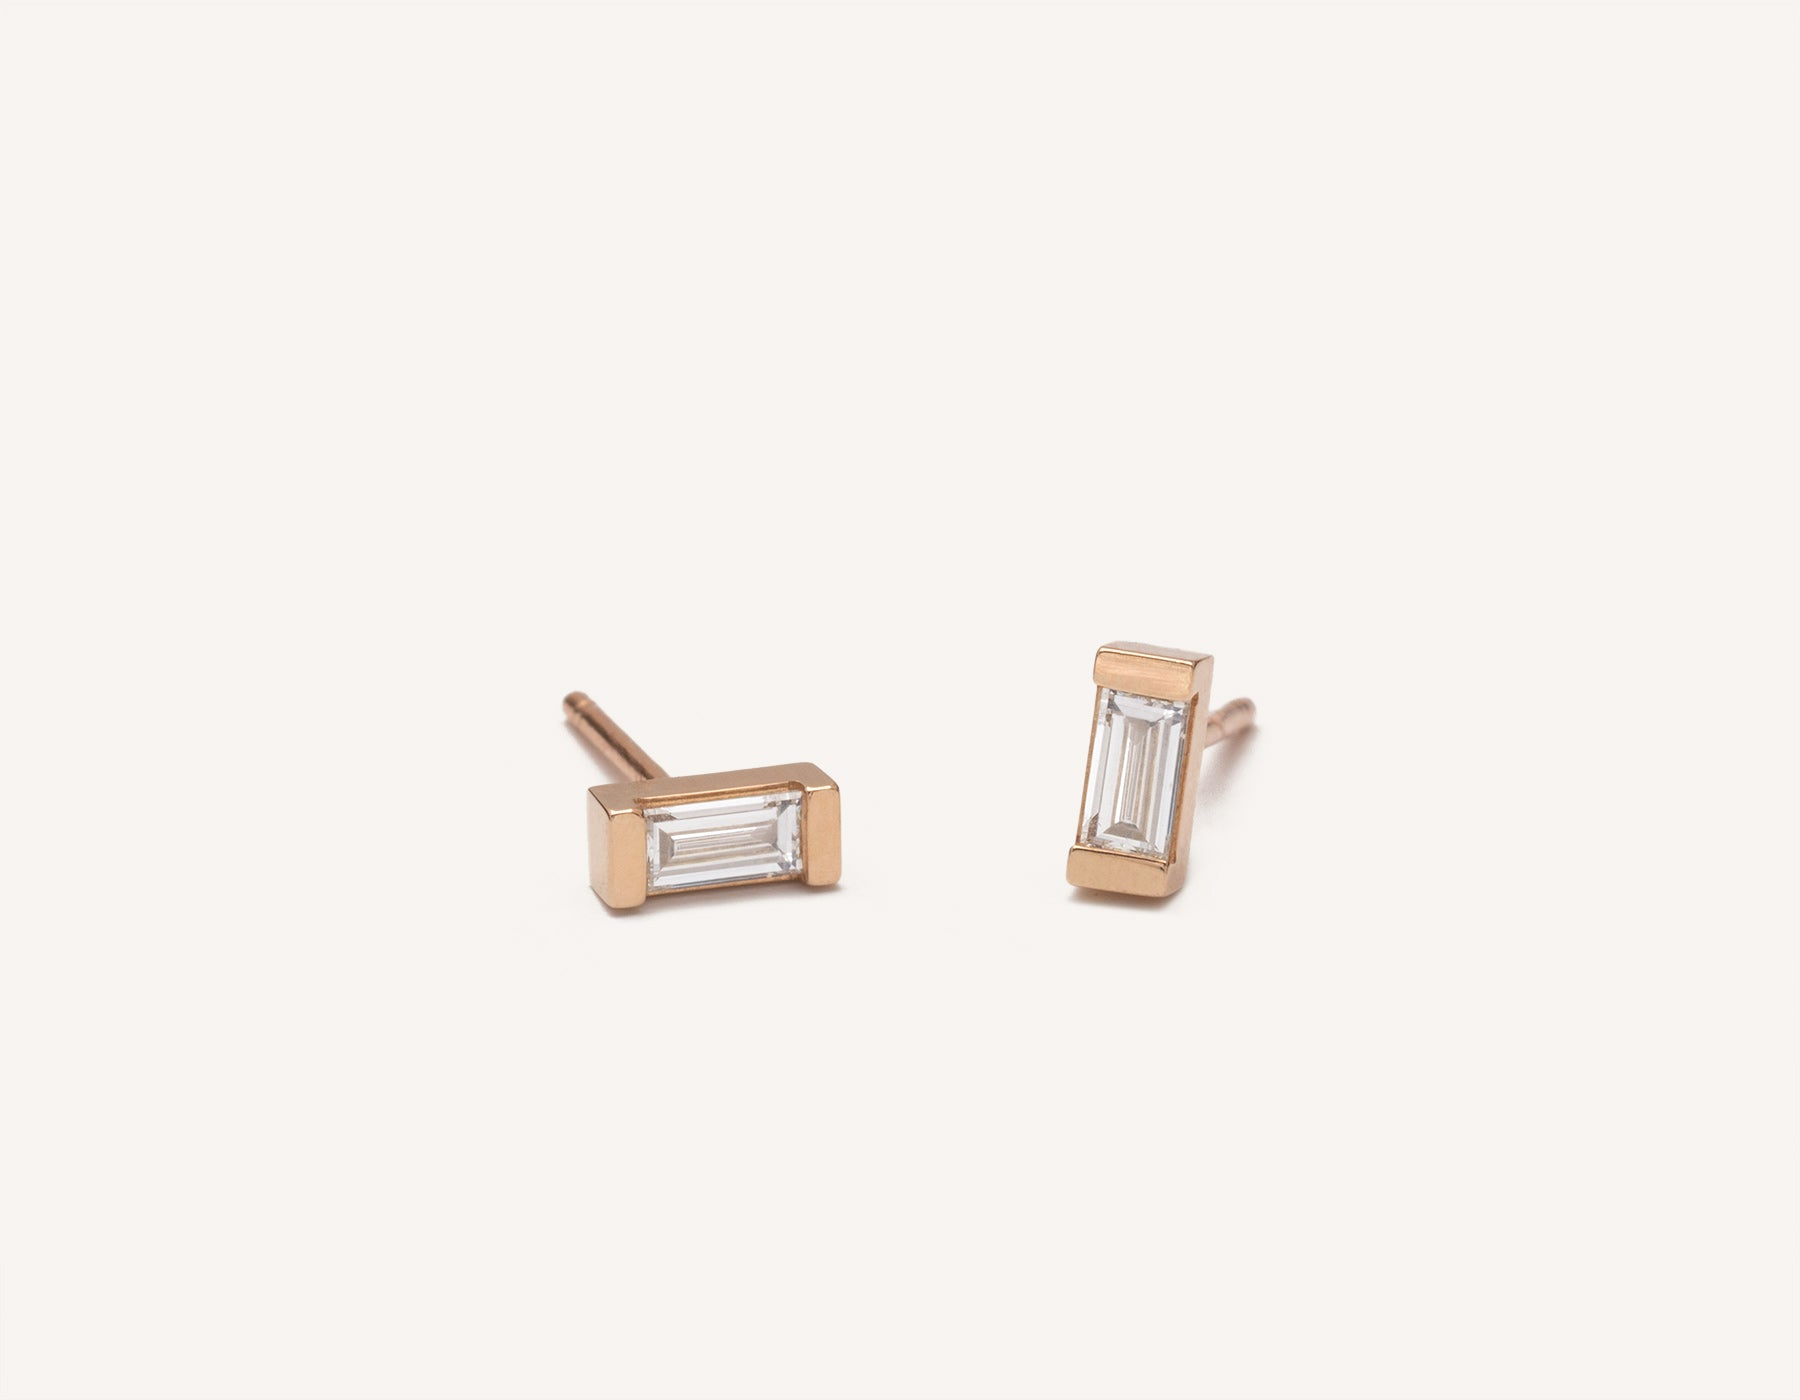 Simple elegant studs 14k solid gold Baguette Diamond Earrings from Vrai and Oro in a channel setting with a post backing, 14K Rose Gold